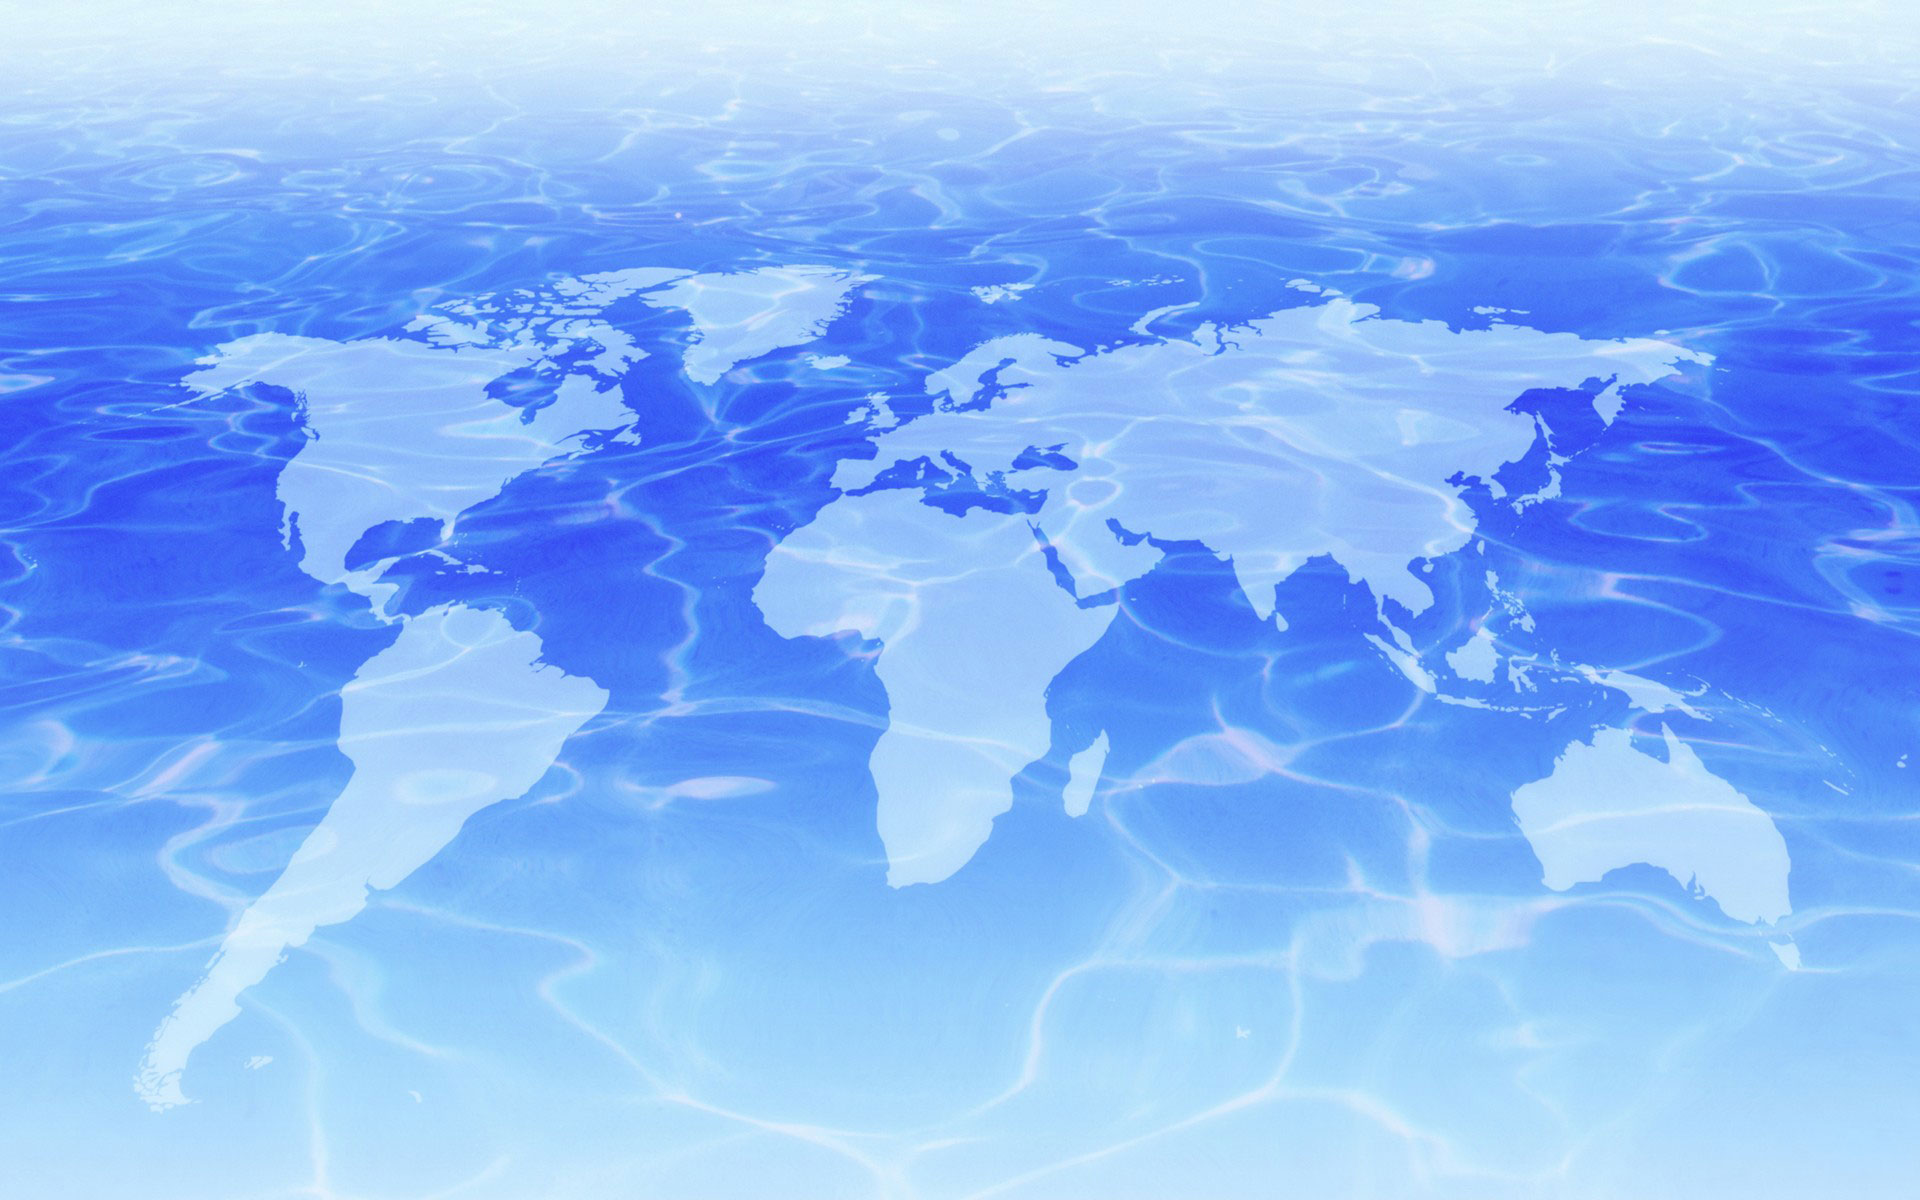 Free World Atlas Backgrounds For PowerPoint - Miscellaneous PPT ...